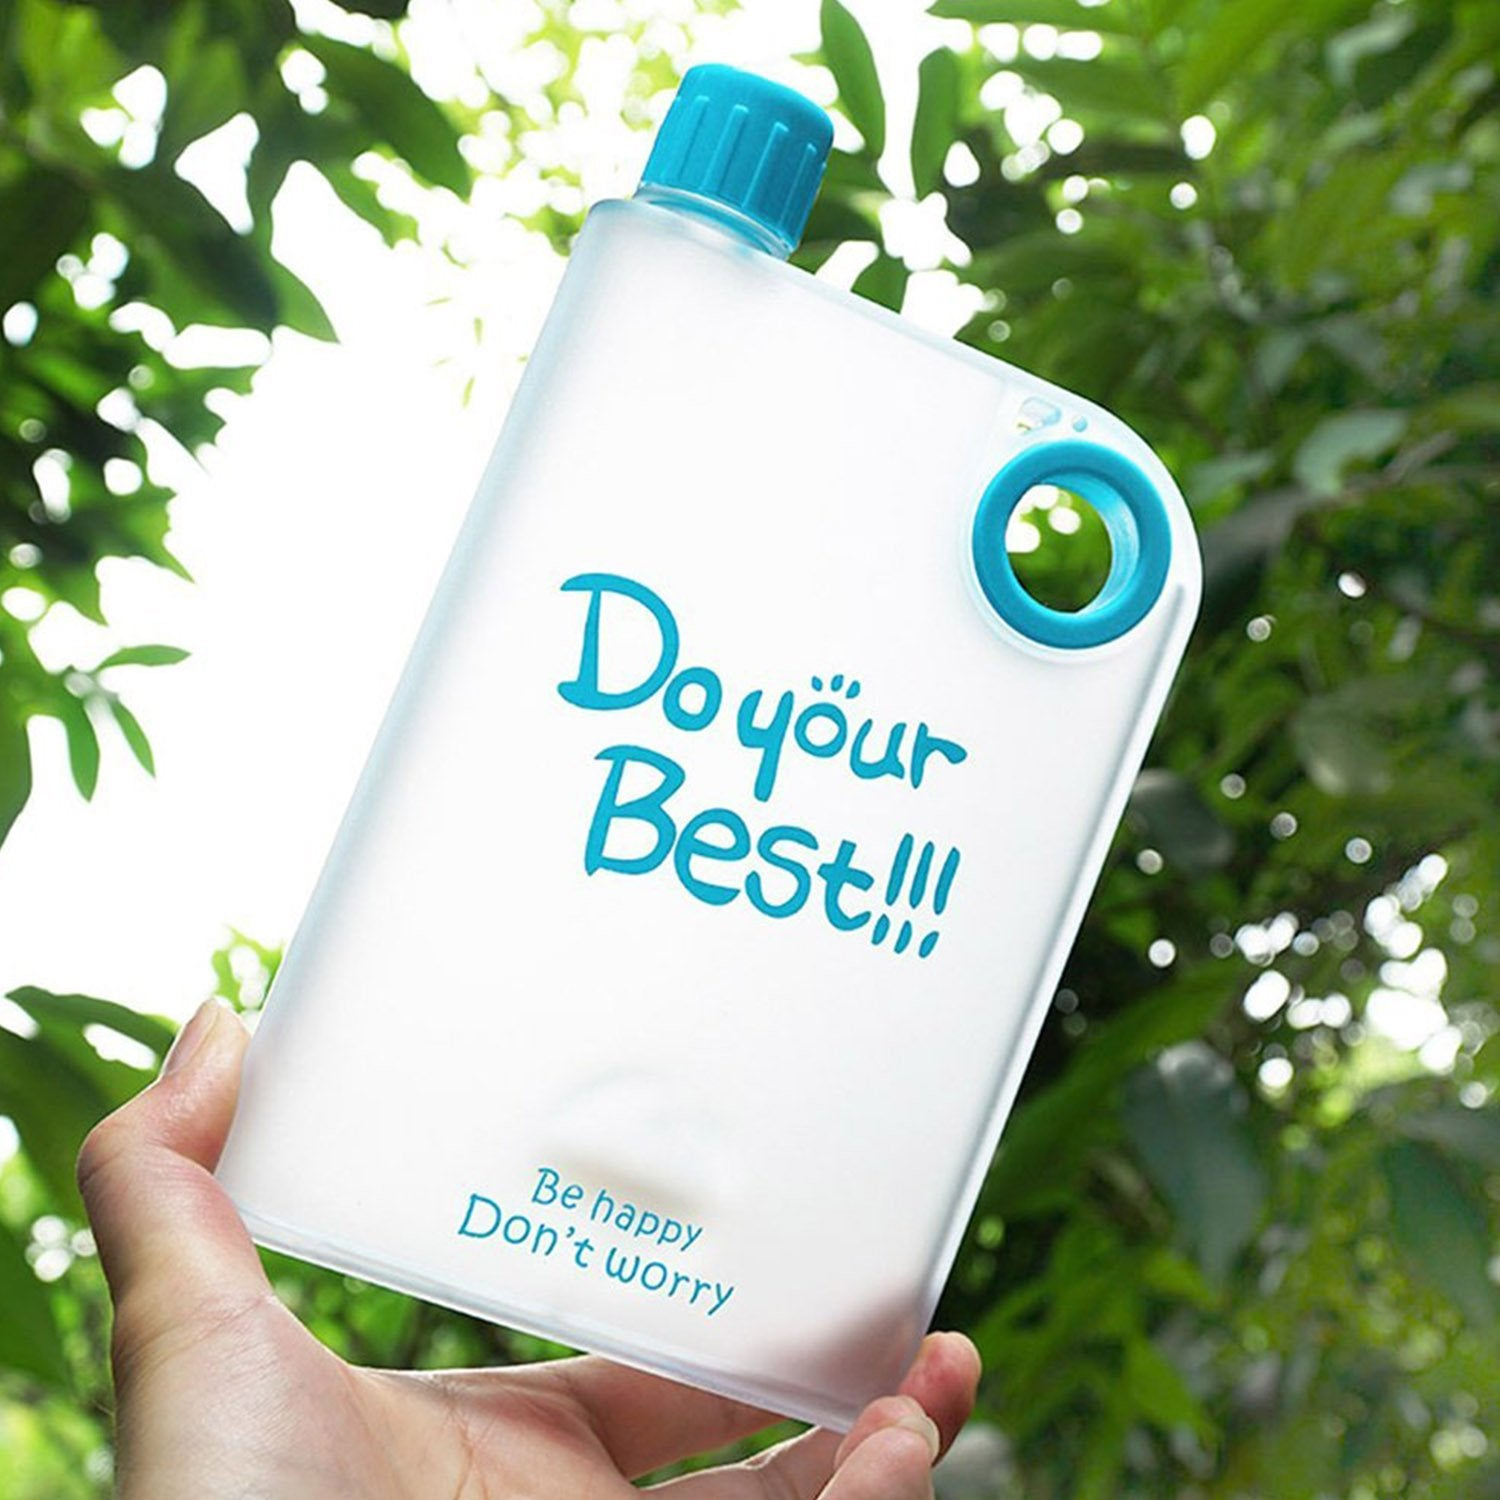 A5 SIZE MEMO BOTTLE / NOTEBOOK STYLE FLAT AND ULTRA SLIM PORTABLE BOTTLE (420 ML) - Wholesale Only